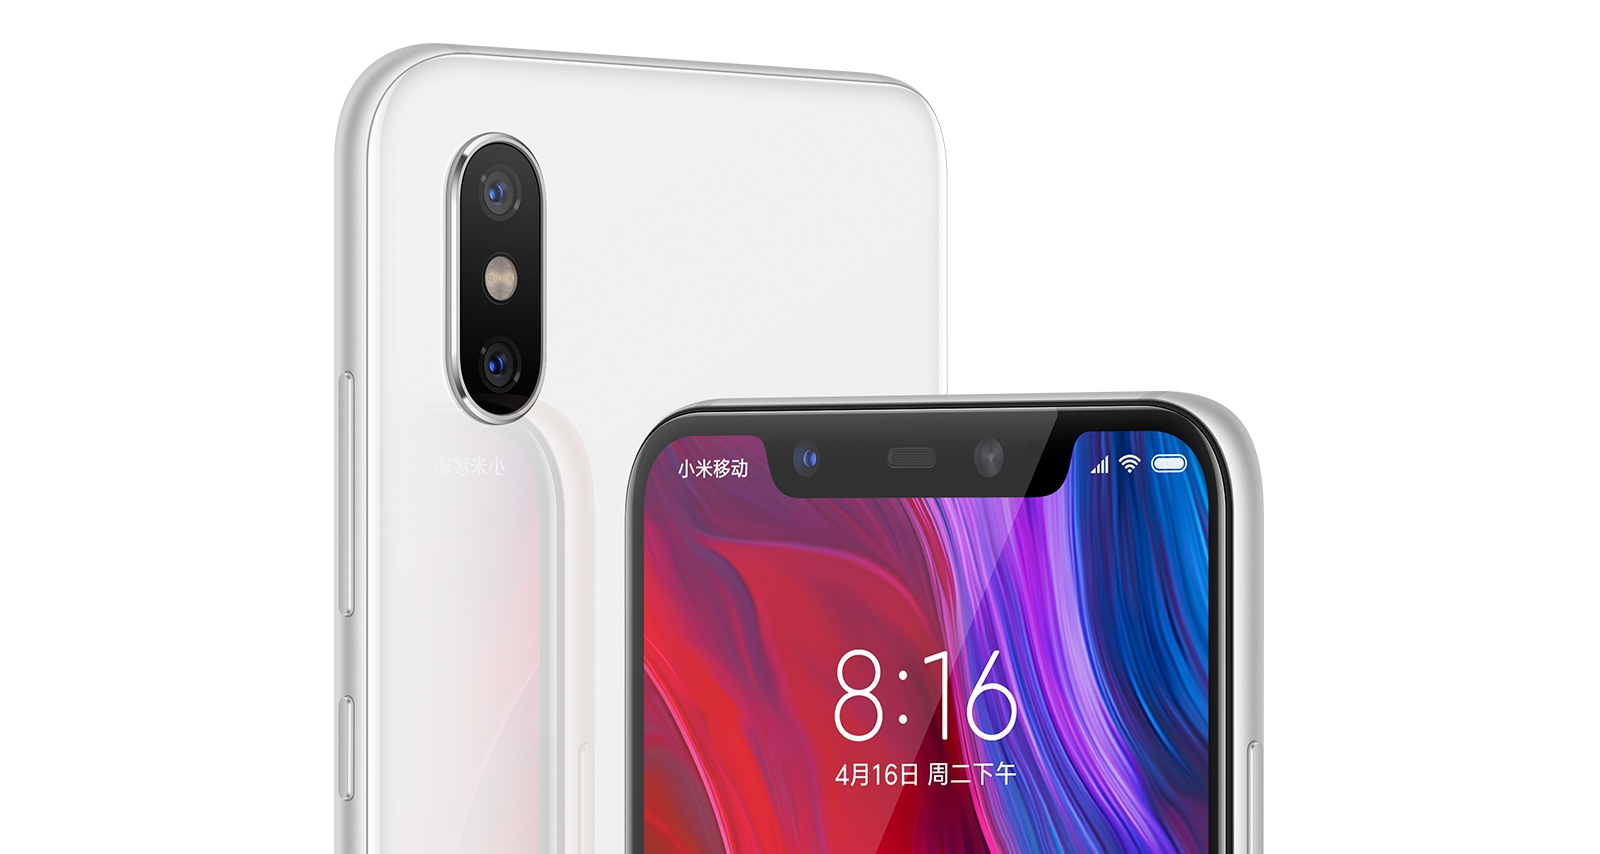 Xiaomi unveils flagship smartphone with a see-through glass back panel